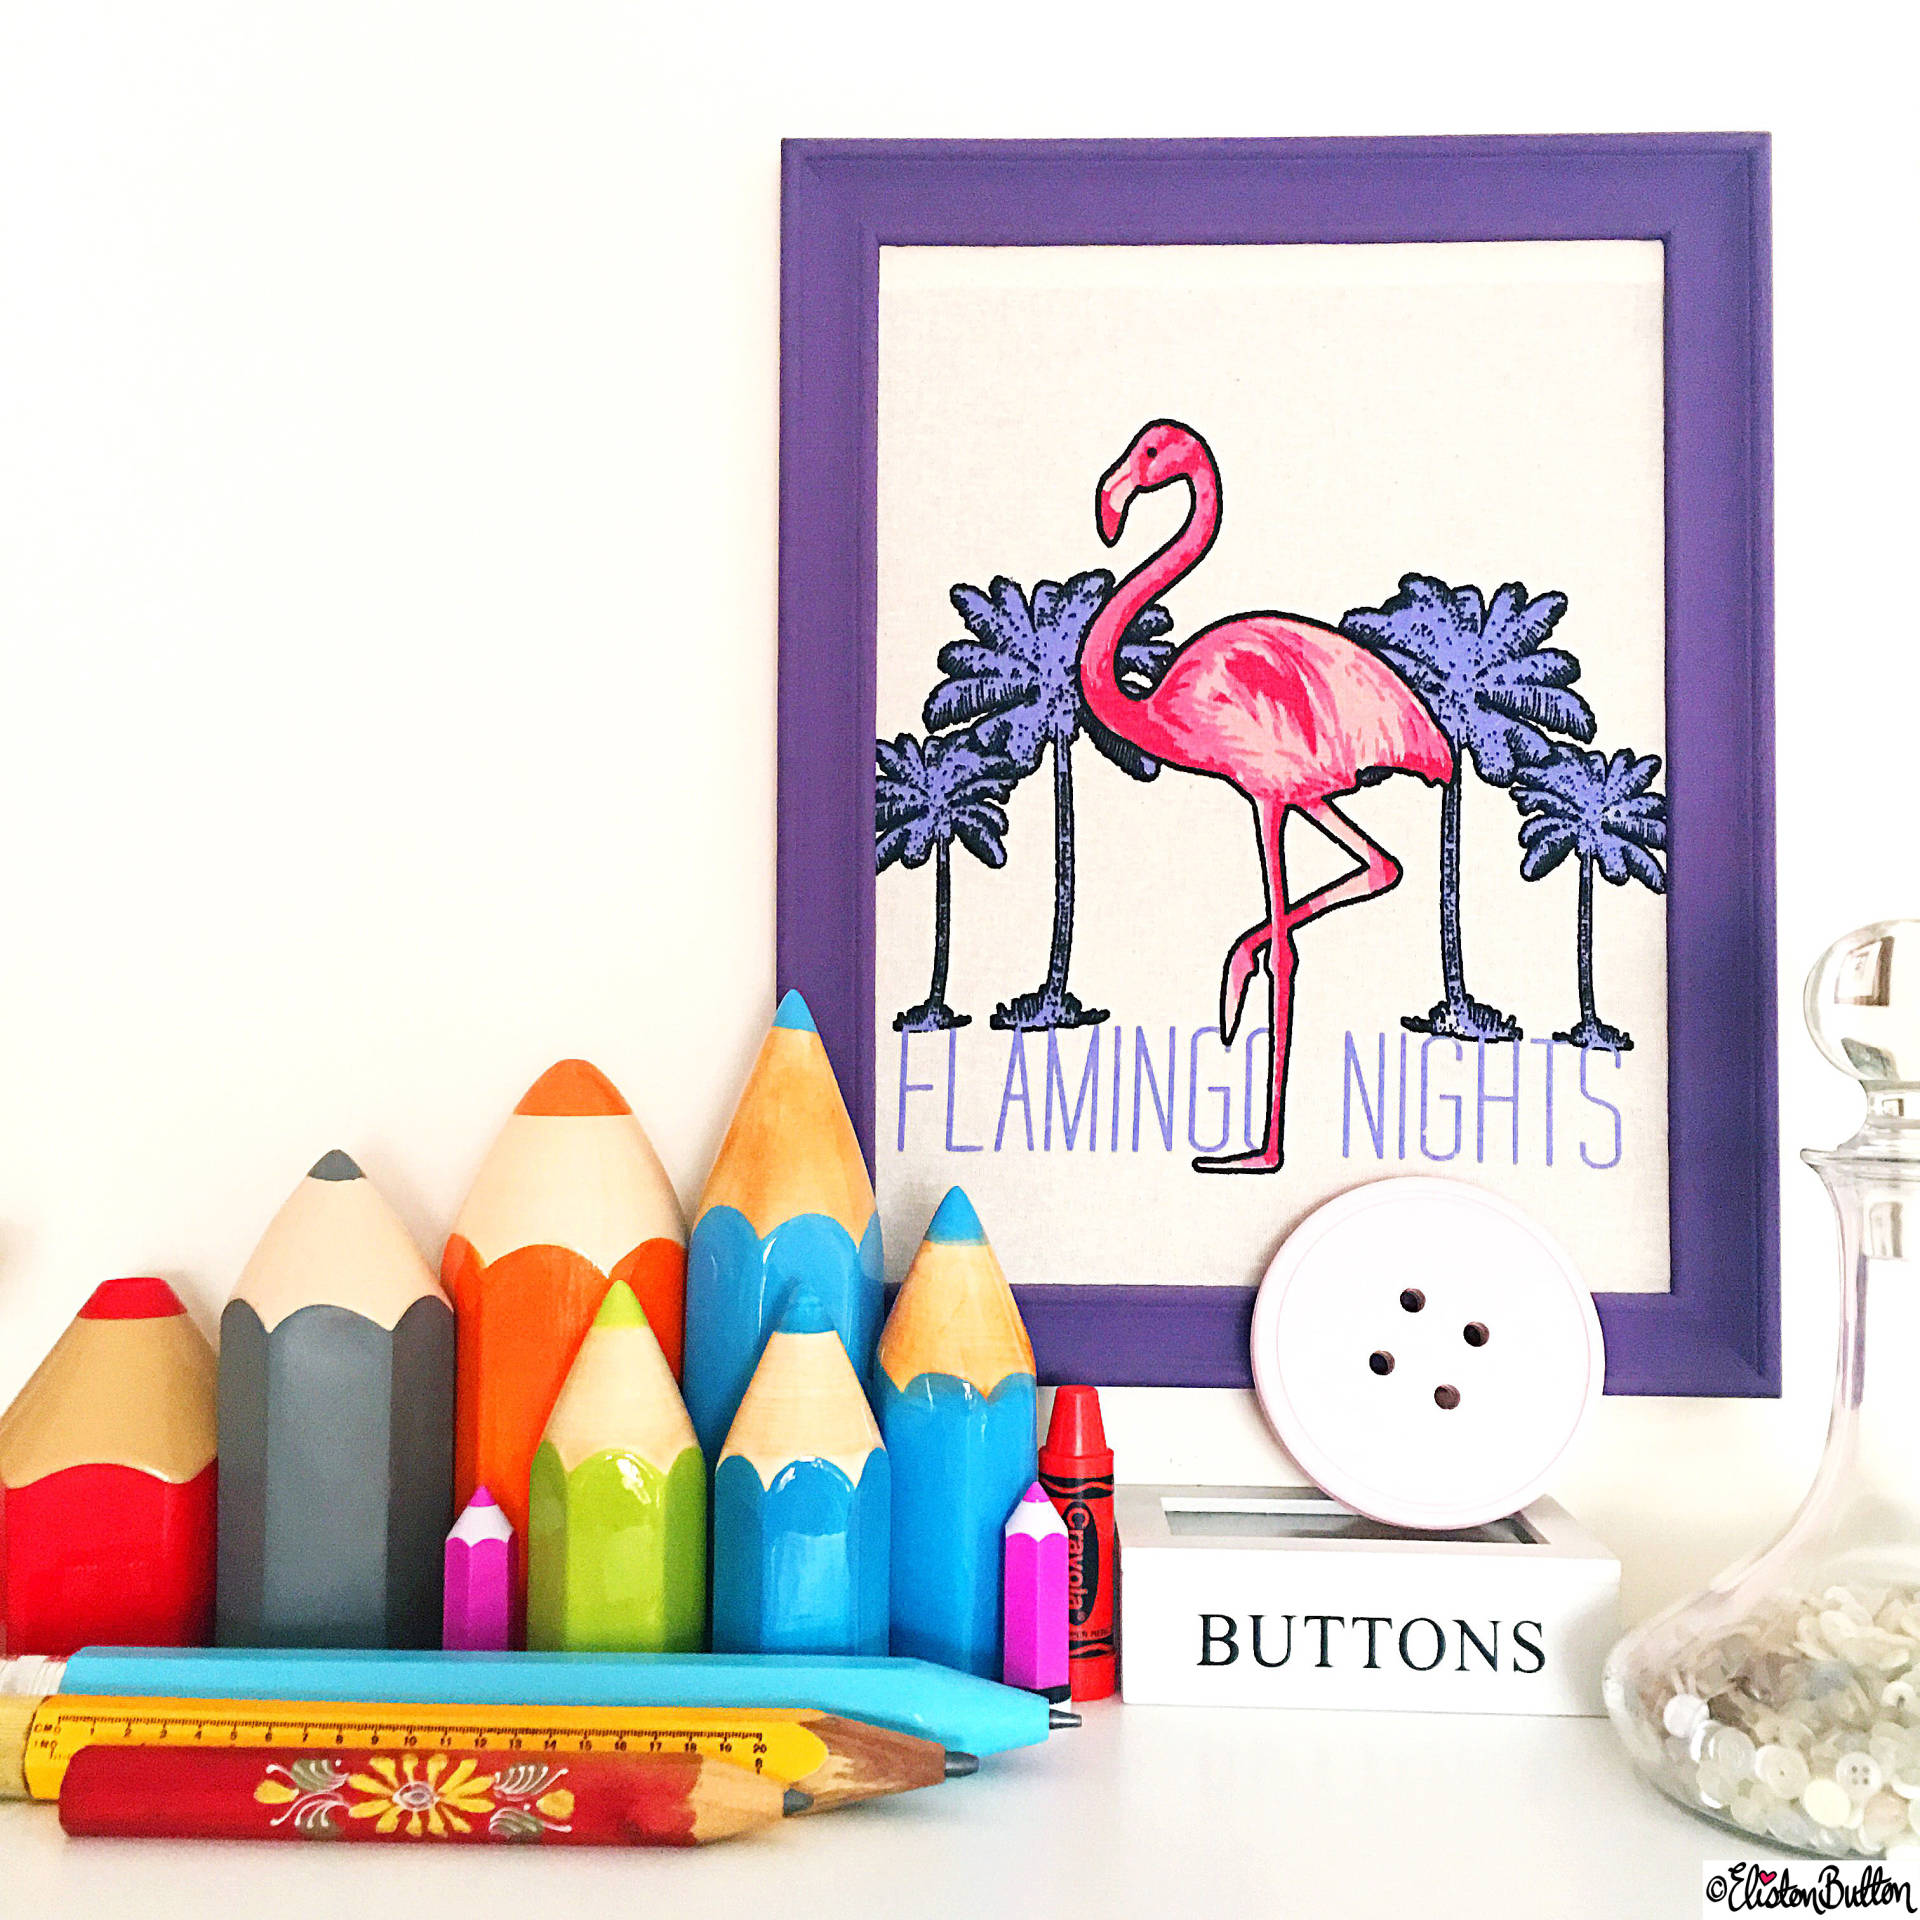 Day 10 - Collection - Flamingo Wall Art and Giant Ceramic Pencil Collection - Photo-a-Day – March 2016 at www.elistonbutton.com - Eliston Button - That Crafty Kid – Art, Design, Craft & Adventure.